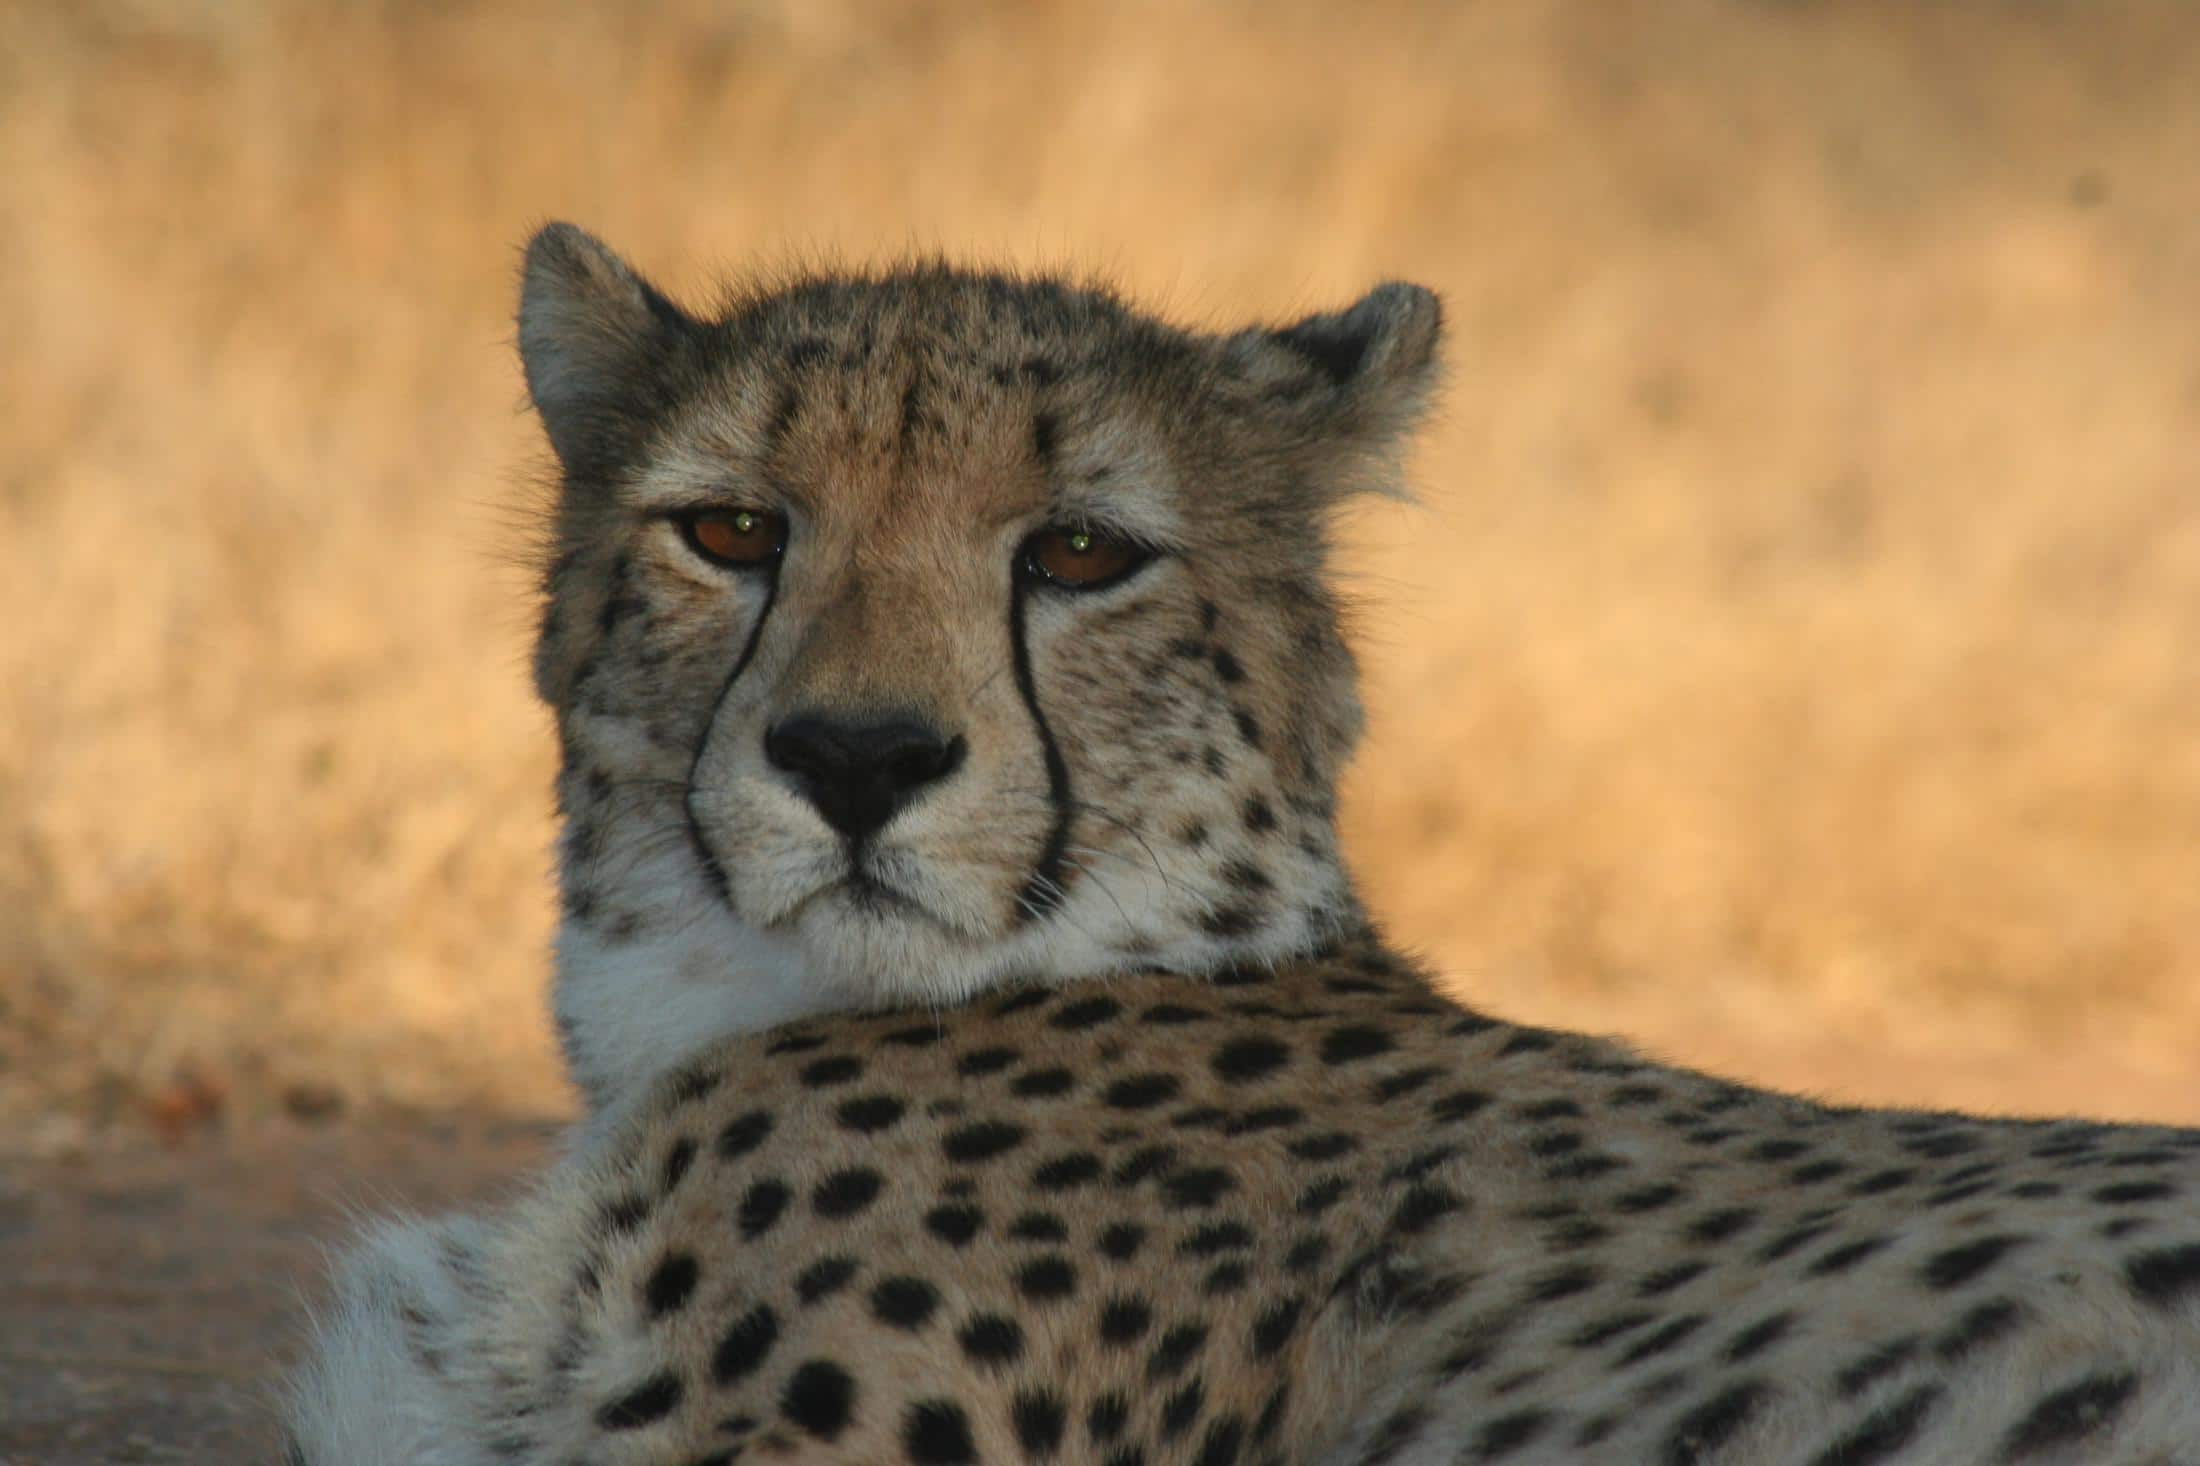 Zo spot je de Big 5 in Zuid-Afrika: cheetah